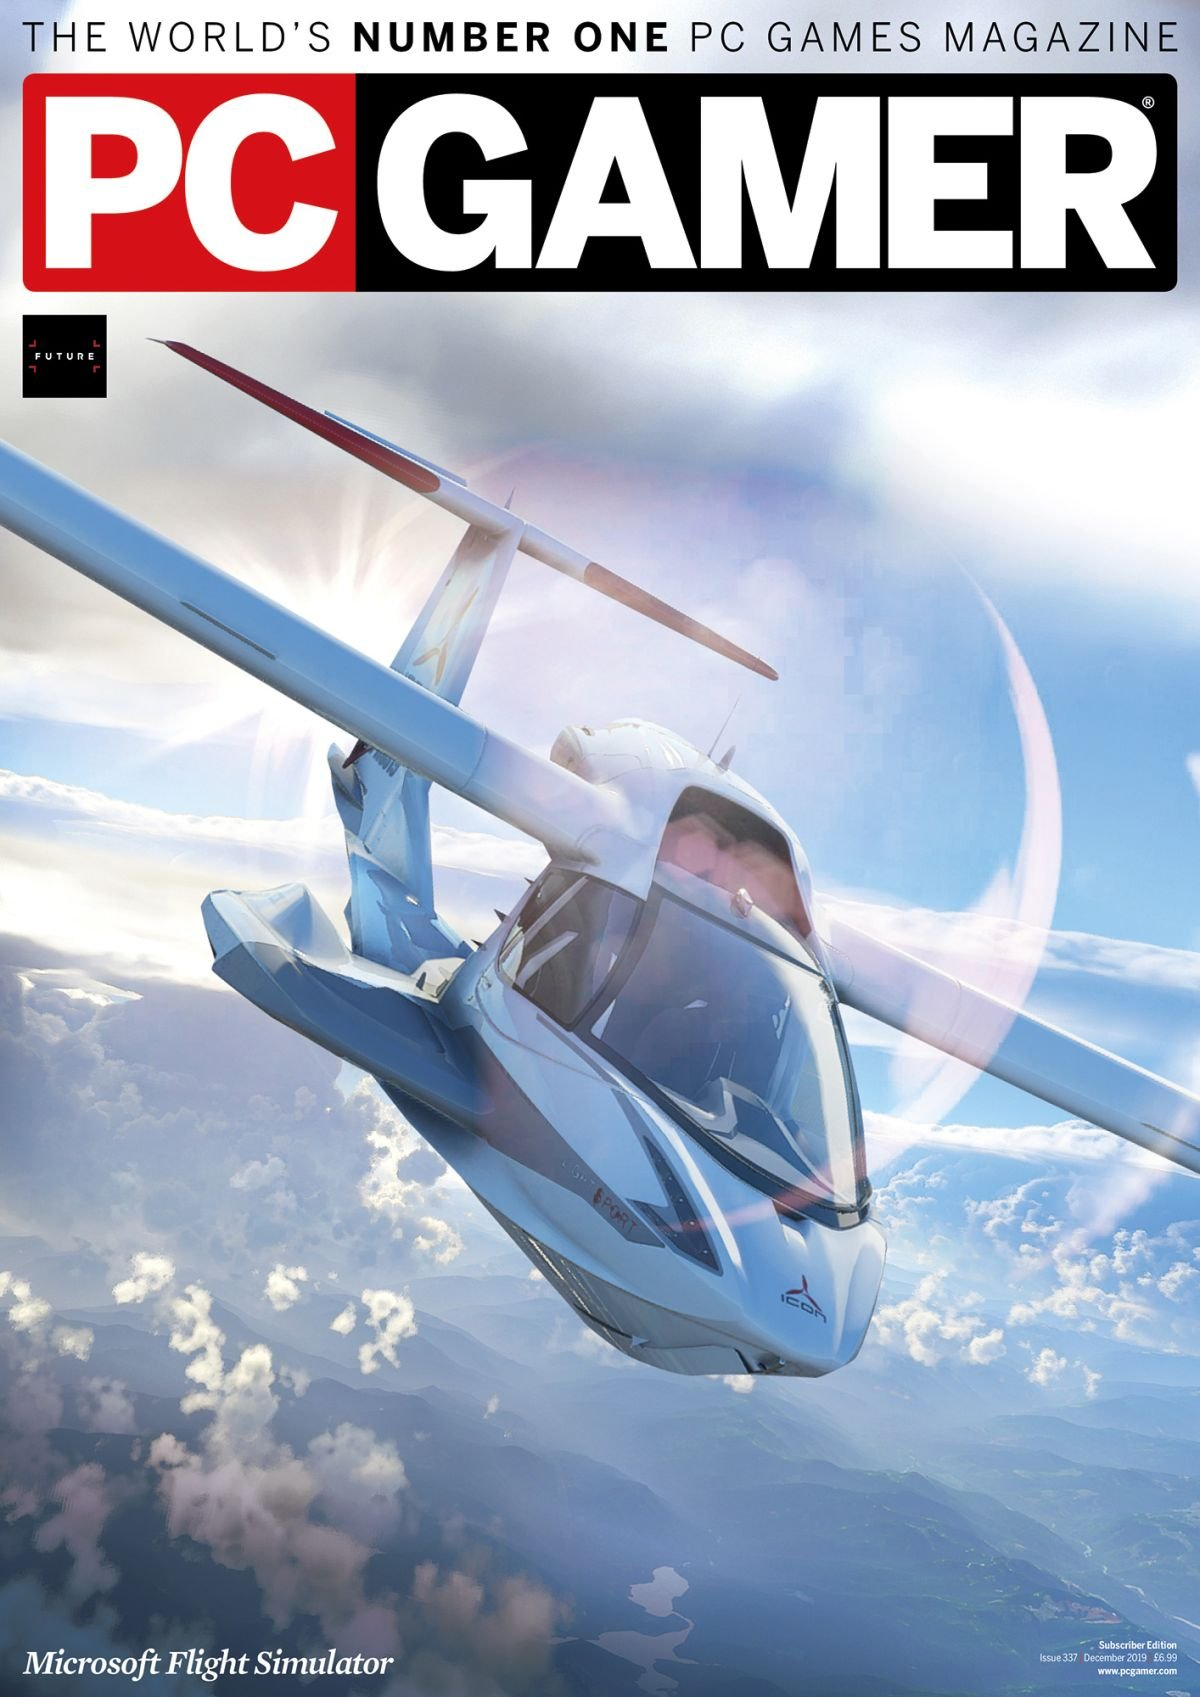 PC Gamer UK Issue 337 (December 2019) (subscriber edition)